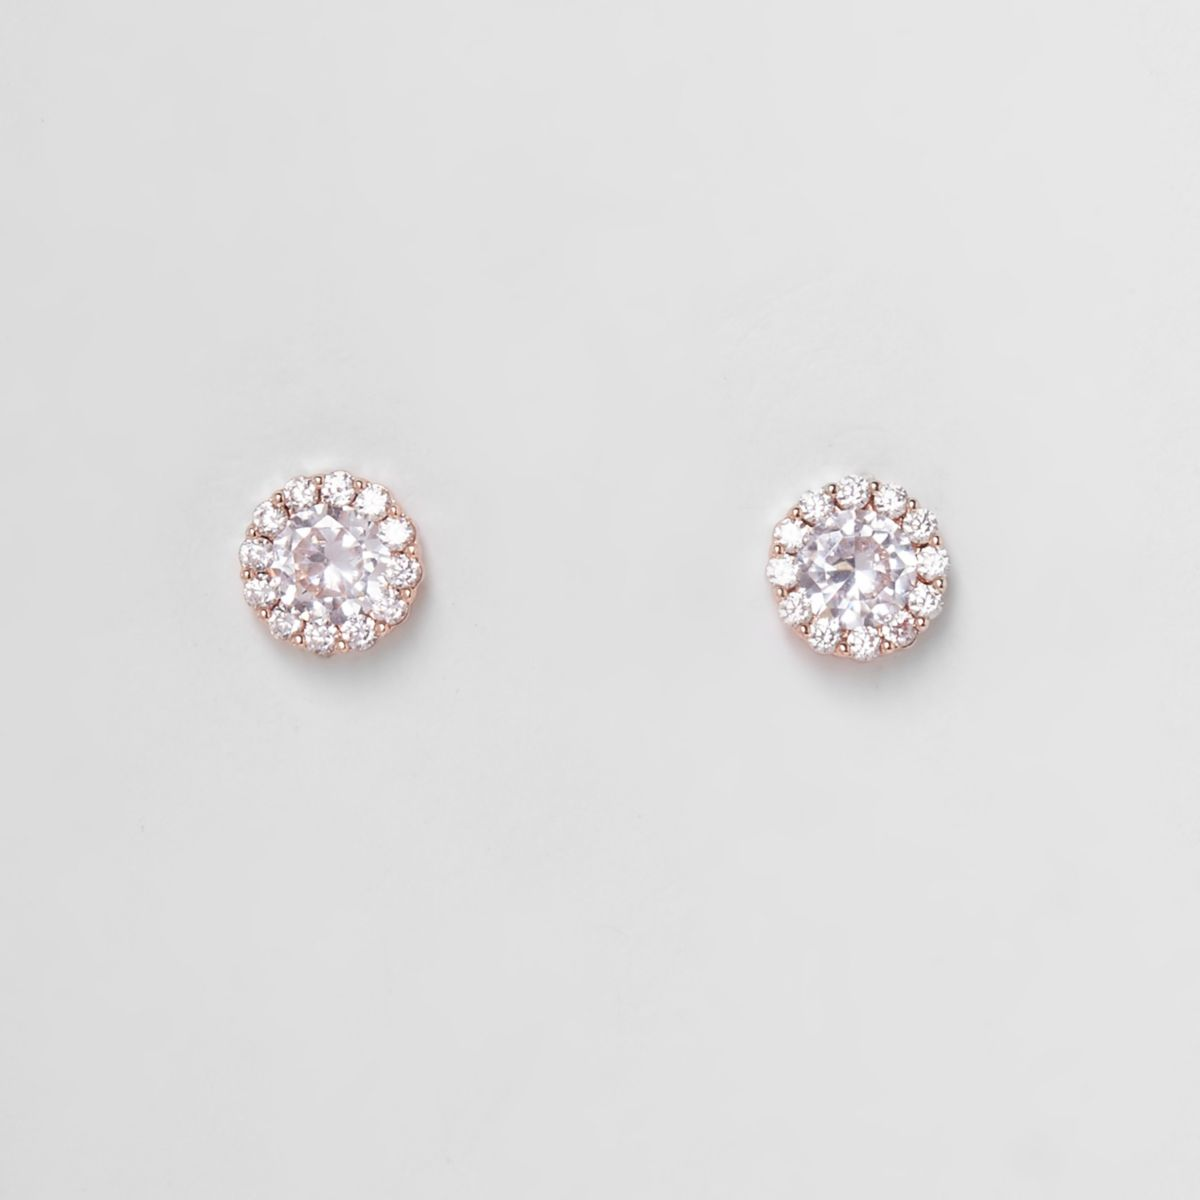 Rose gold plated cubic zironia stud earrings